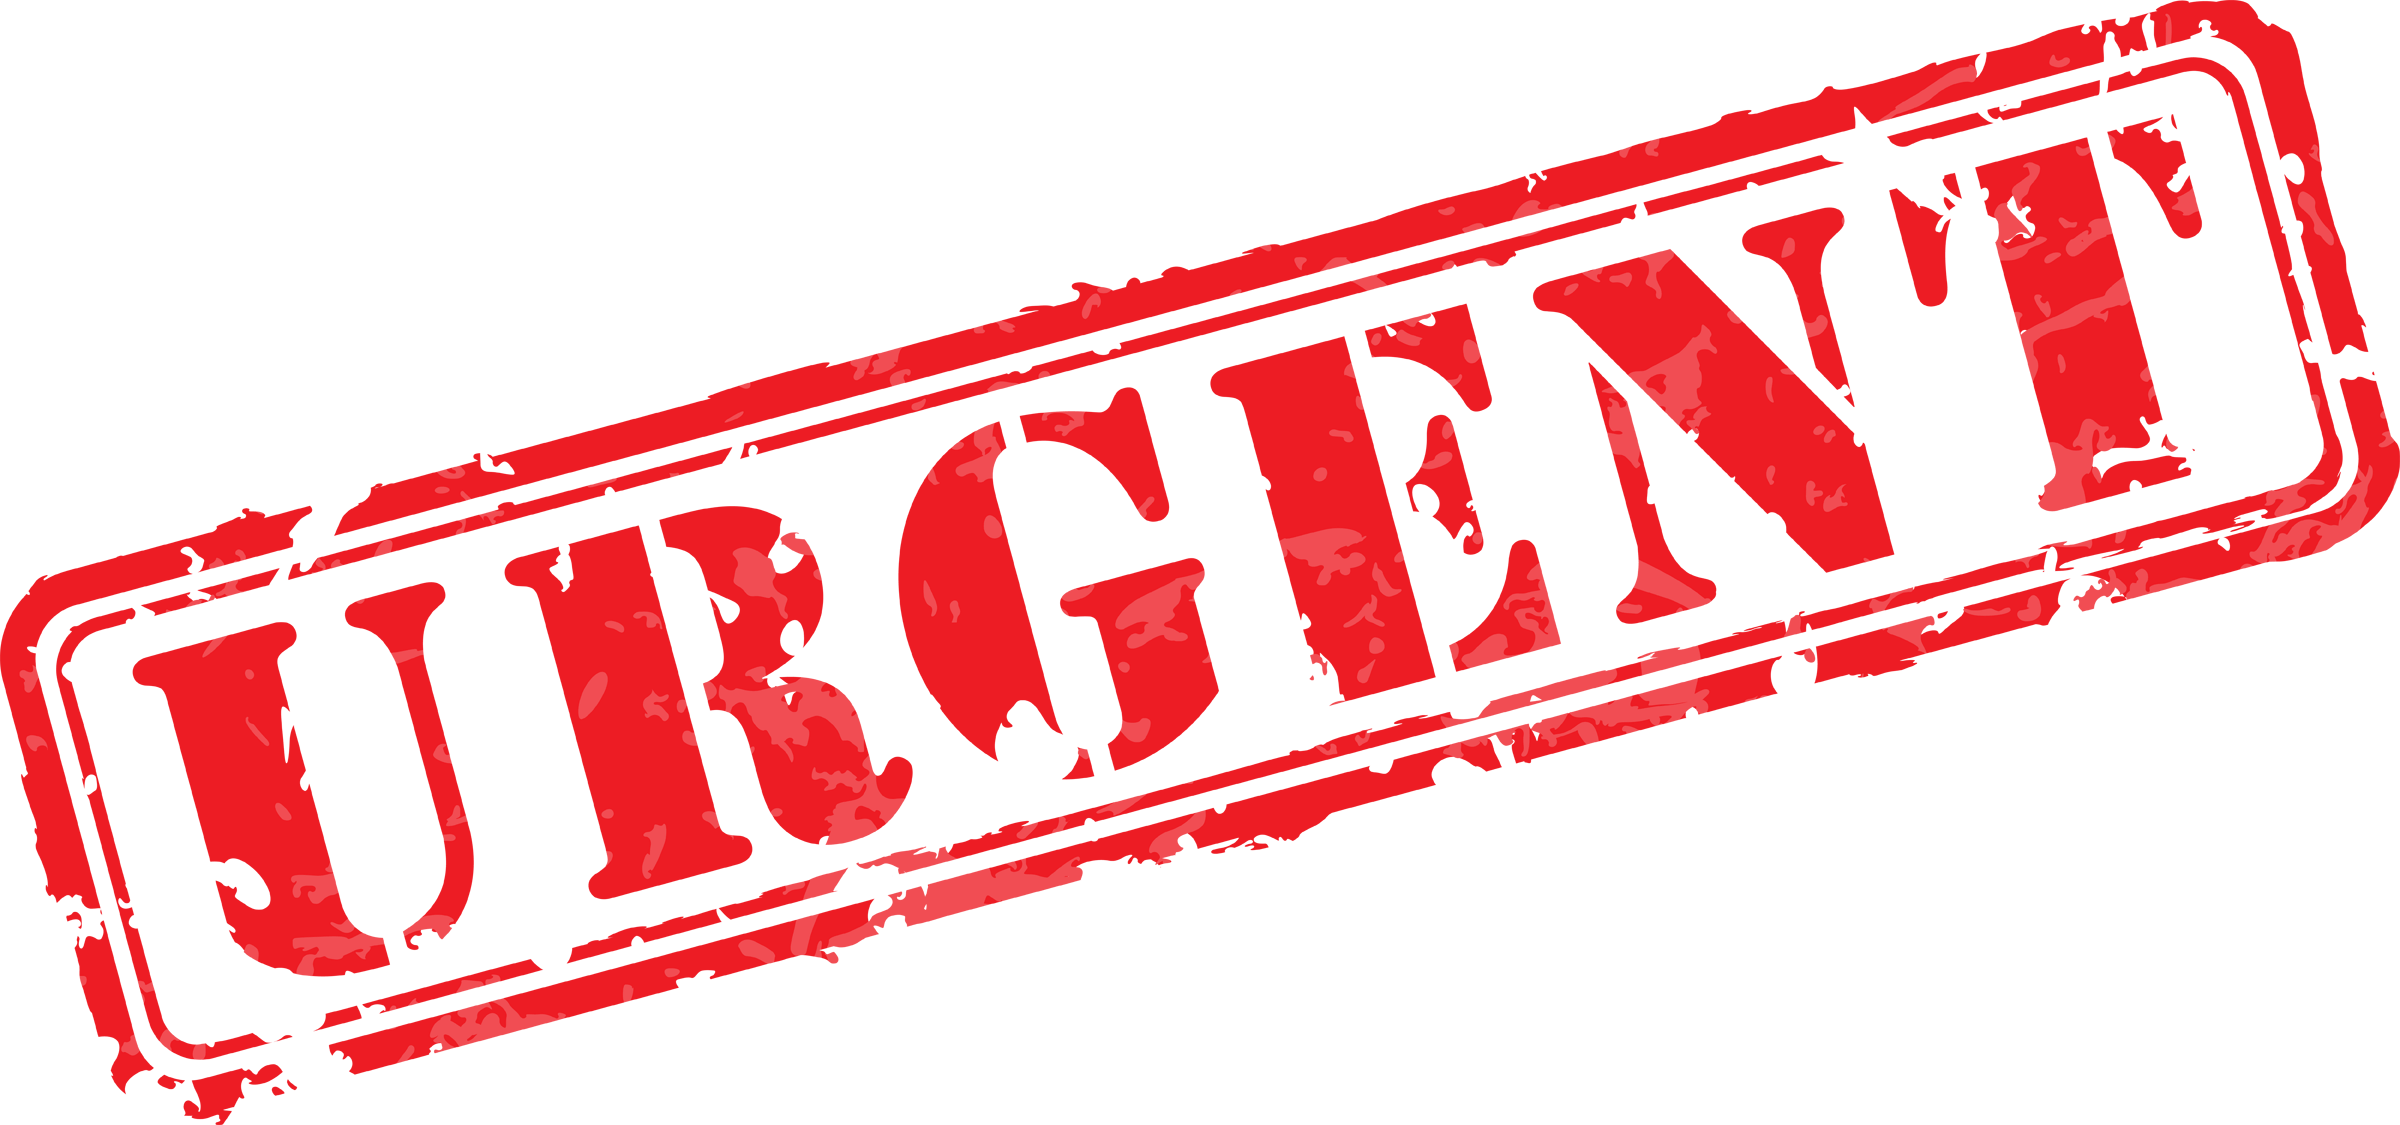 Urgent rubber iclipart png. Stamp clipart ink stamp